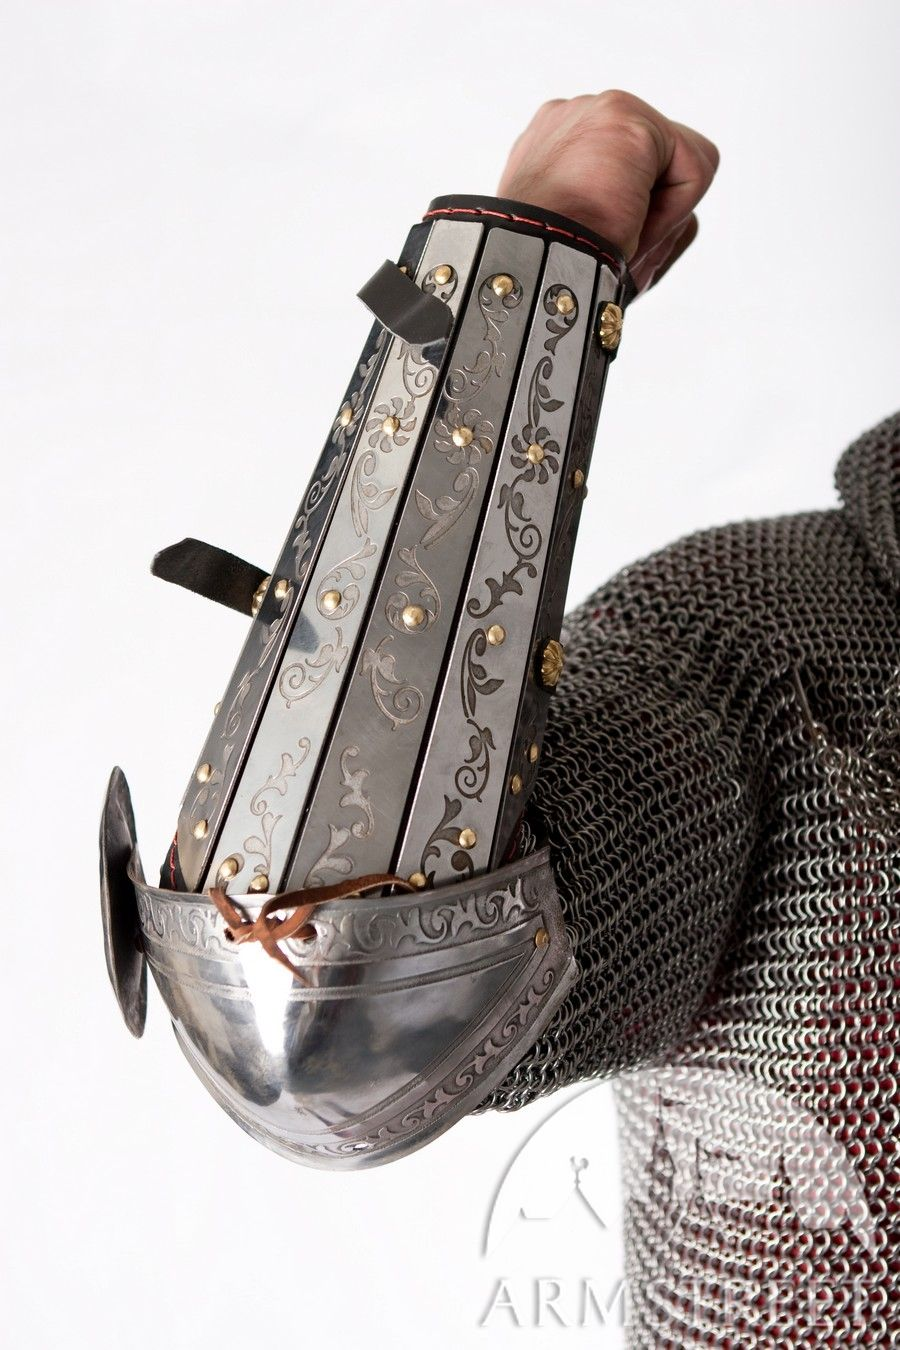 Medieval sca armor bracers splinted with elbow cops and etching on it